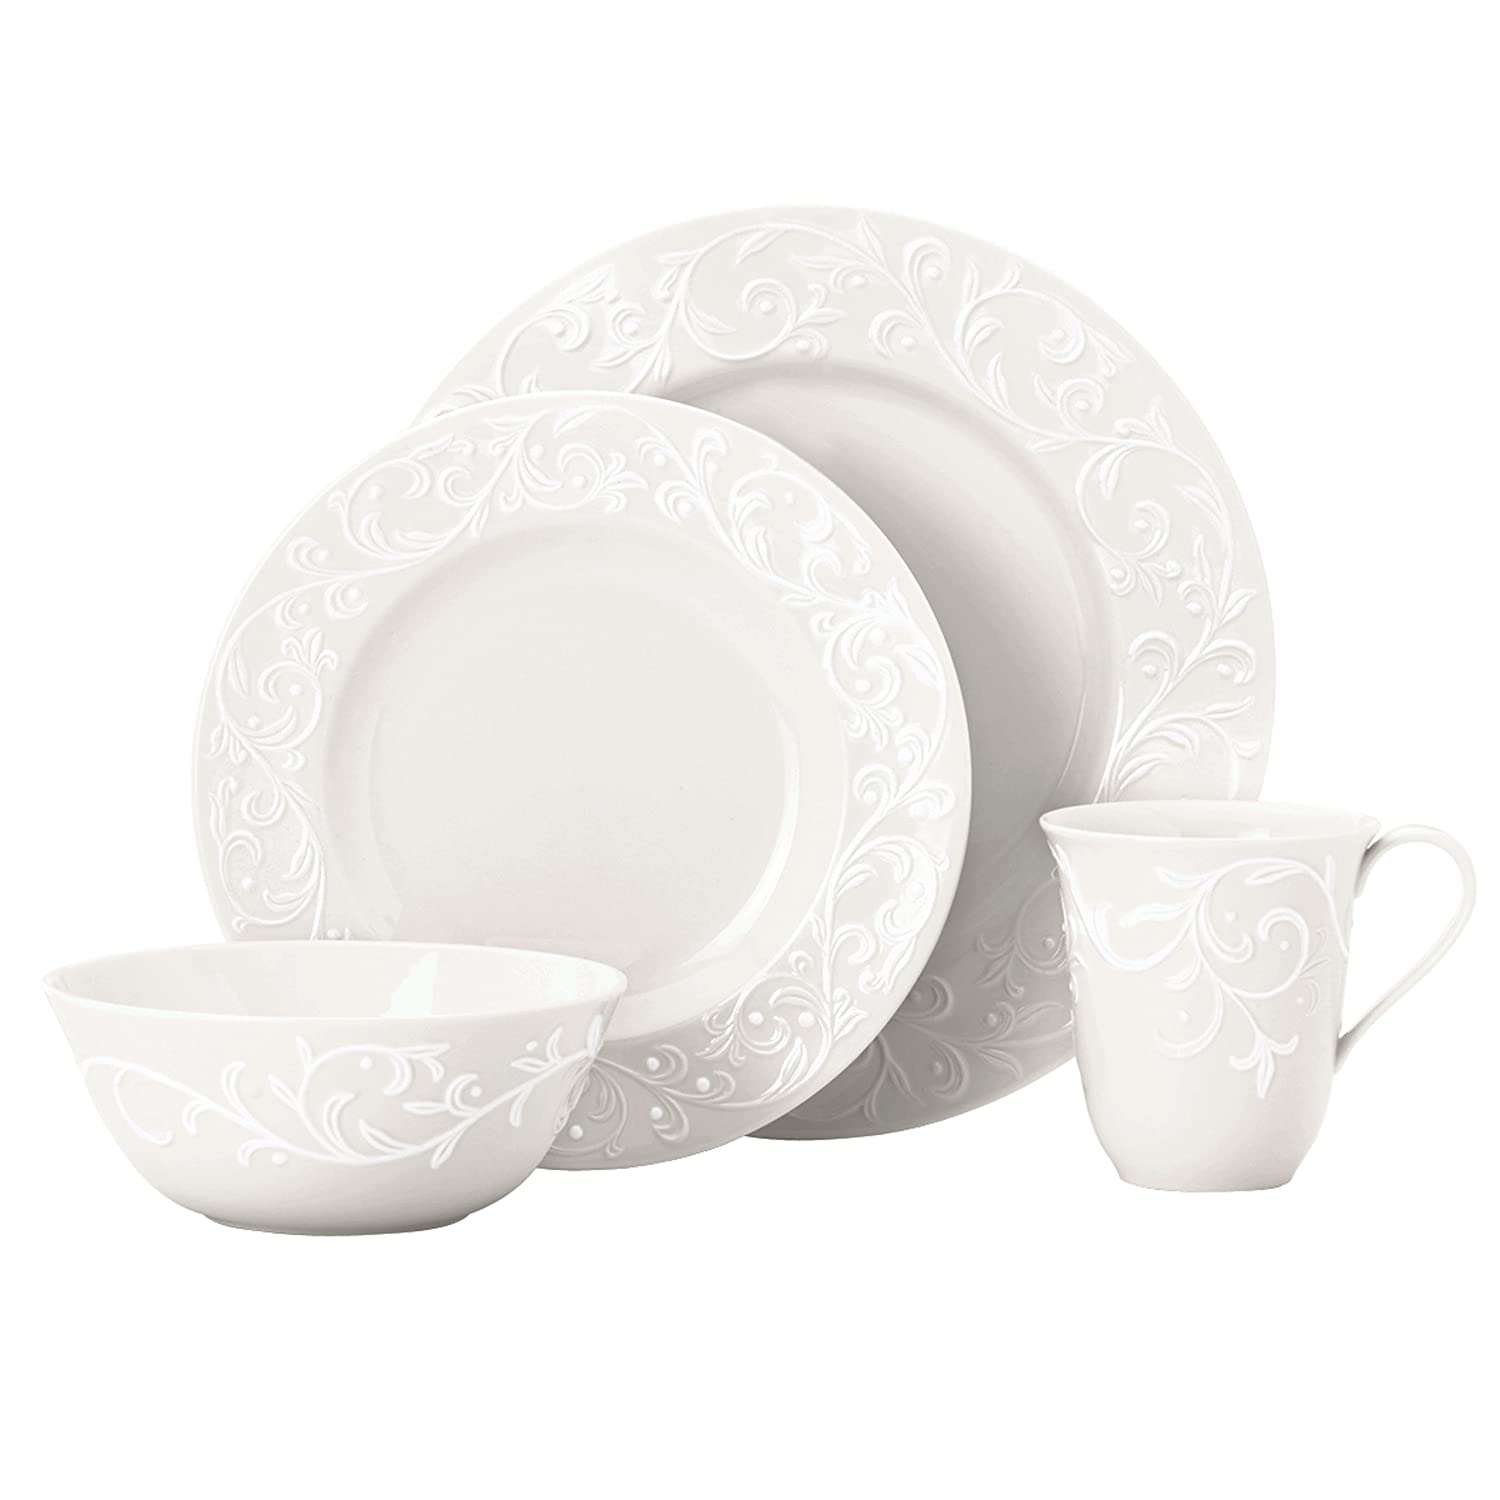 Christmas Tablescape Décor - Lenox Opal Innocence carved white porcelain 20-Pc dinnerware set - Service for 4